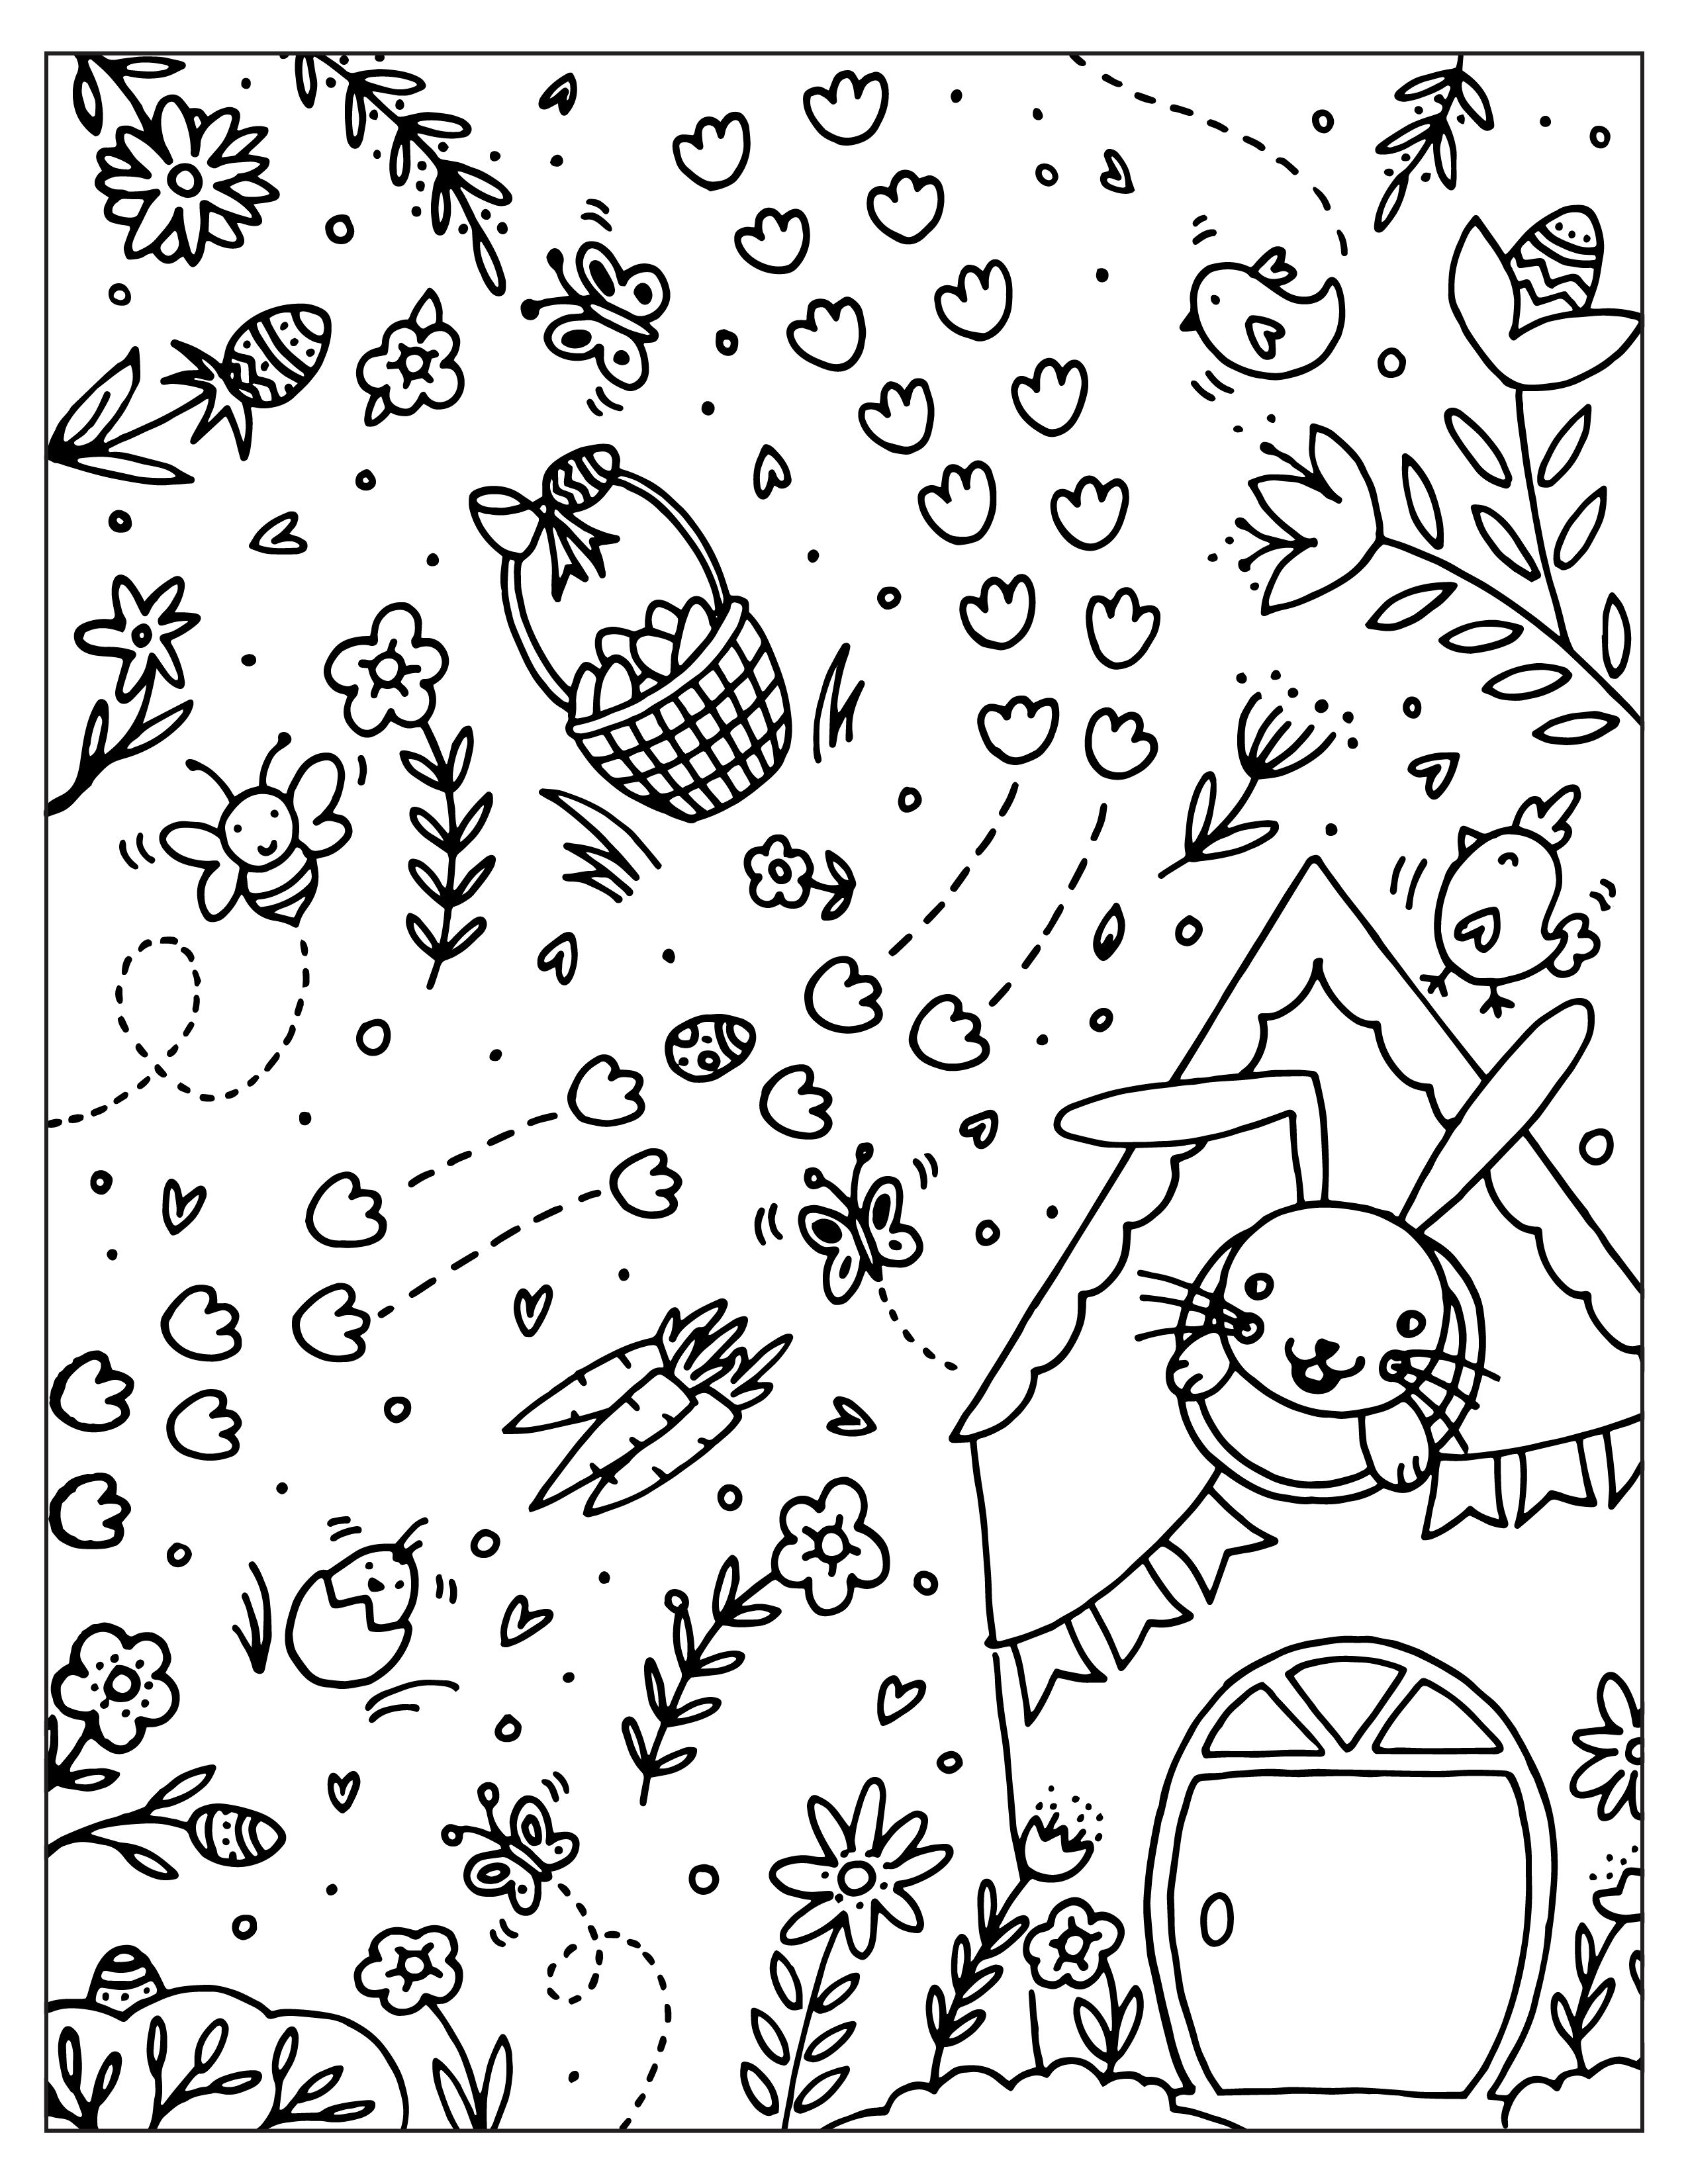 Coloring Sheet Easter Egg Hunt Birthday Coloring Pages Business For Kids Coloring For Kids